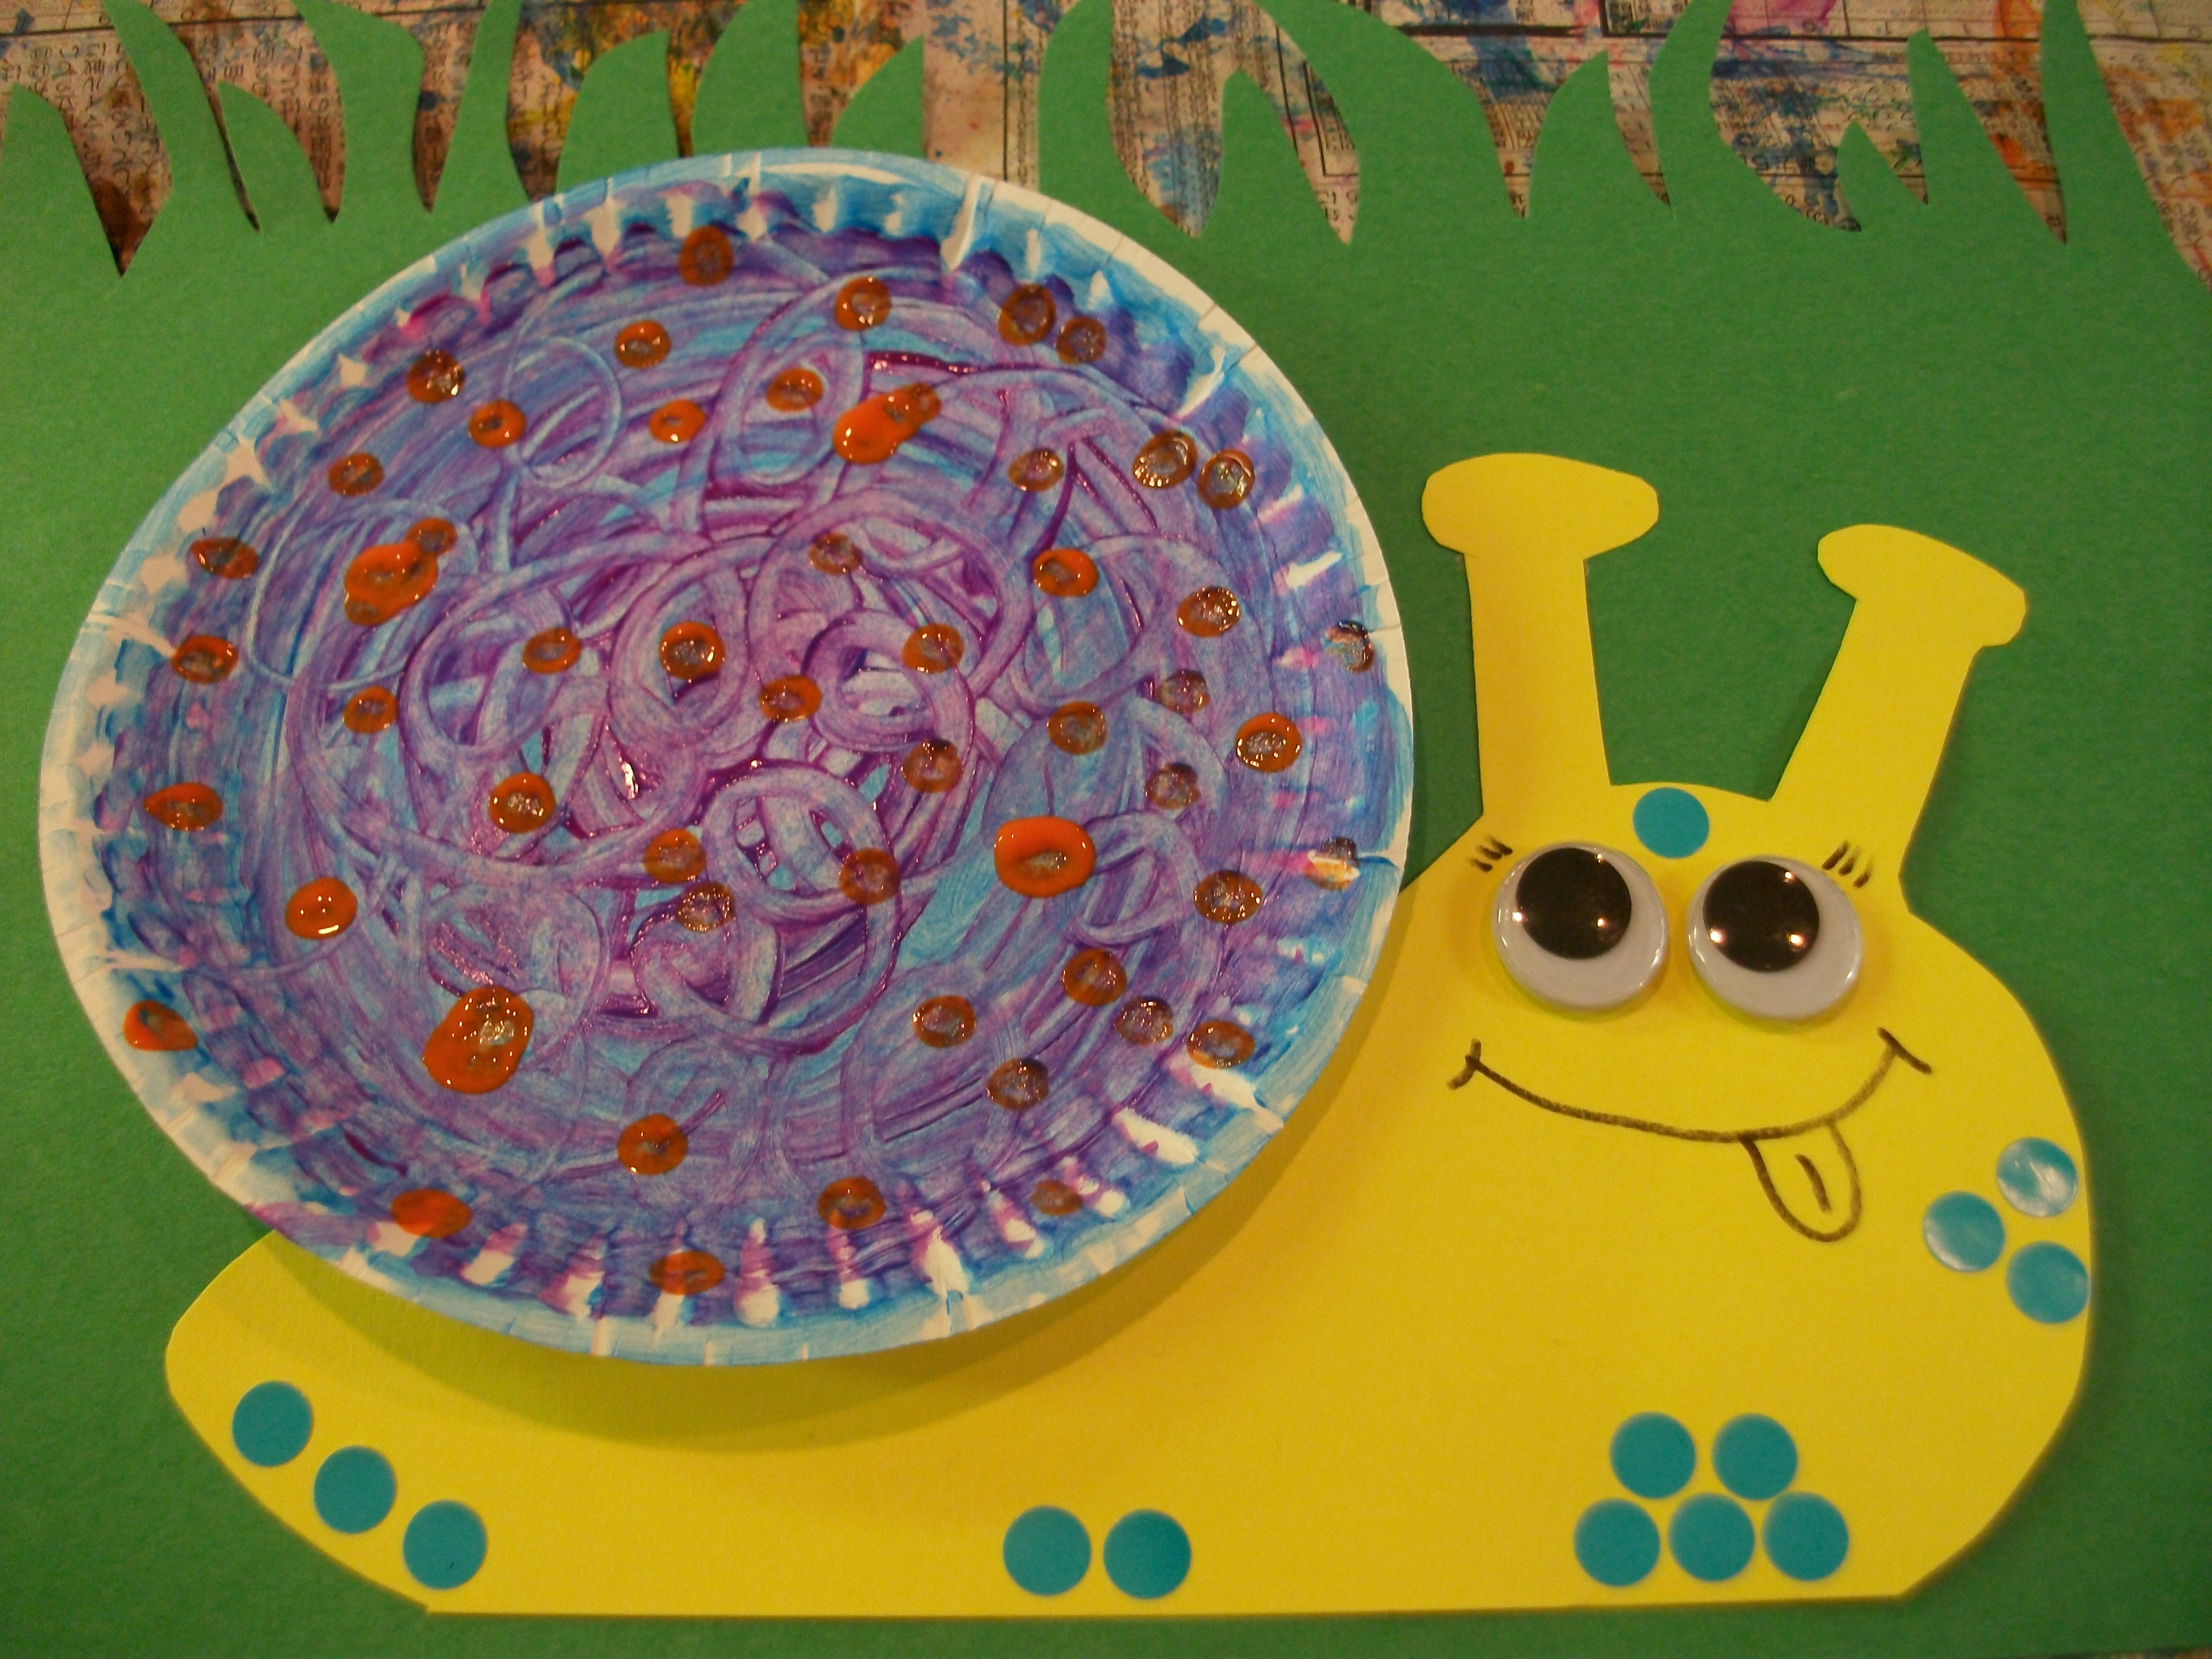 A cute craft from our \ AT THE POND\  unit ... & snail crafts « Playpourri